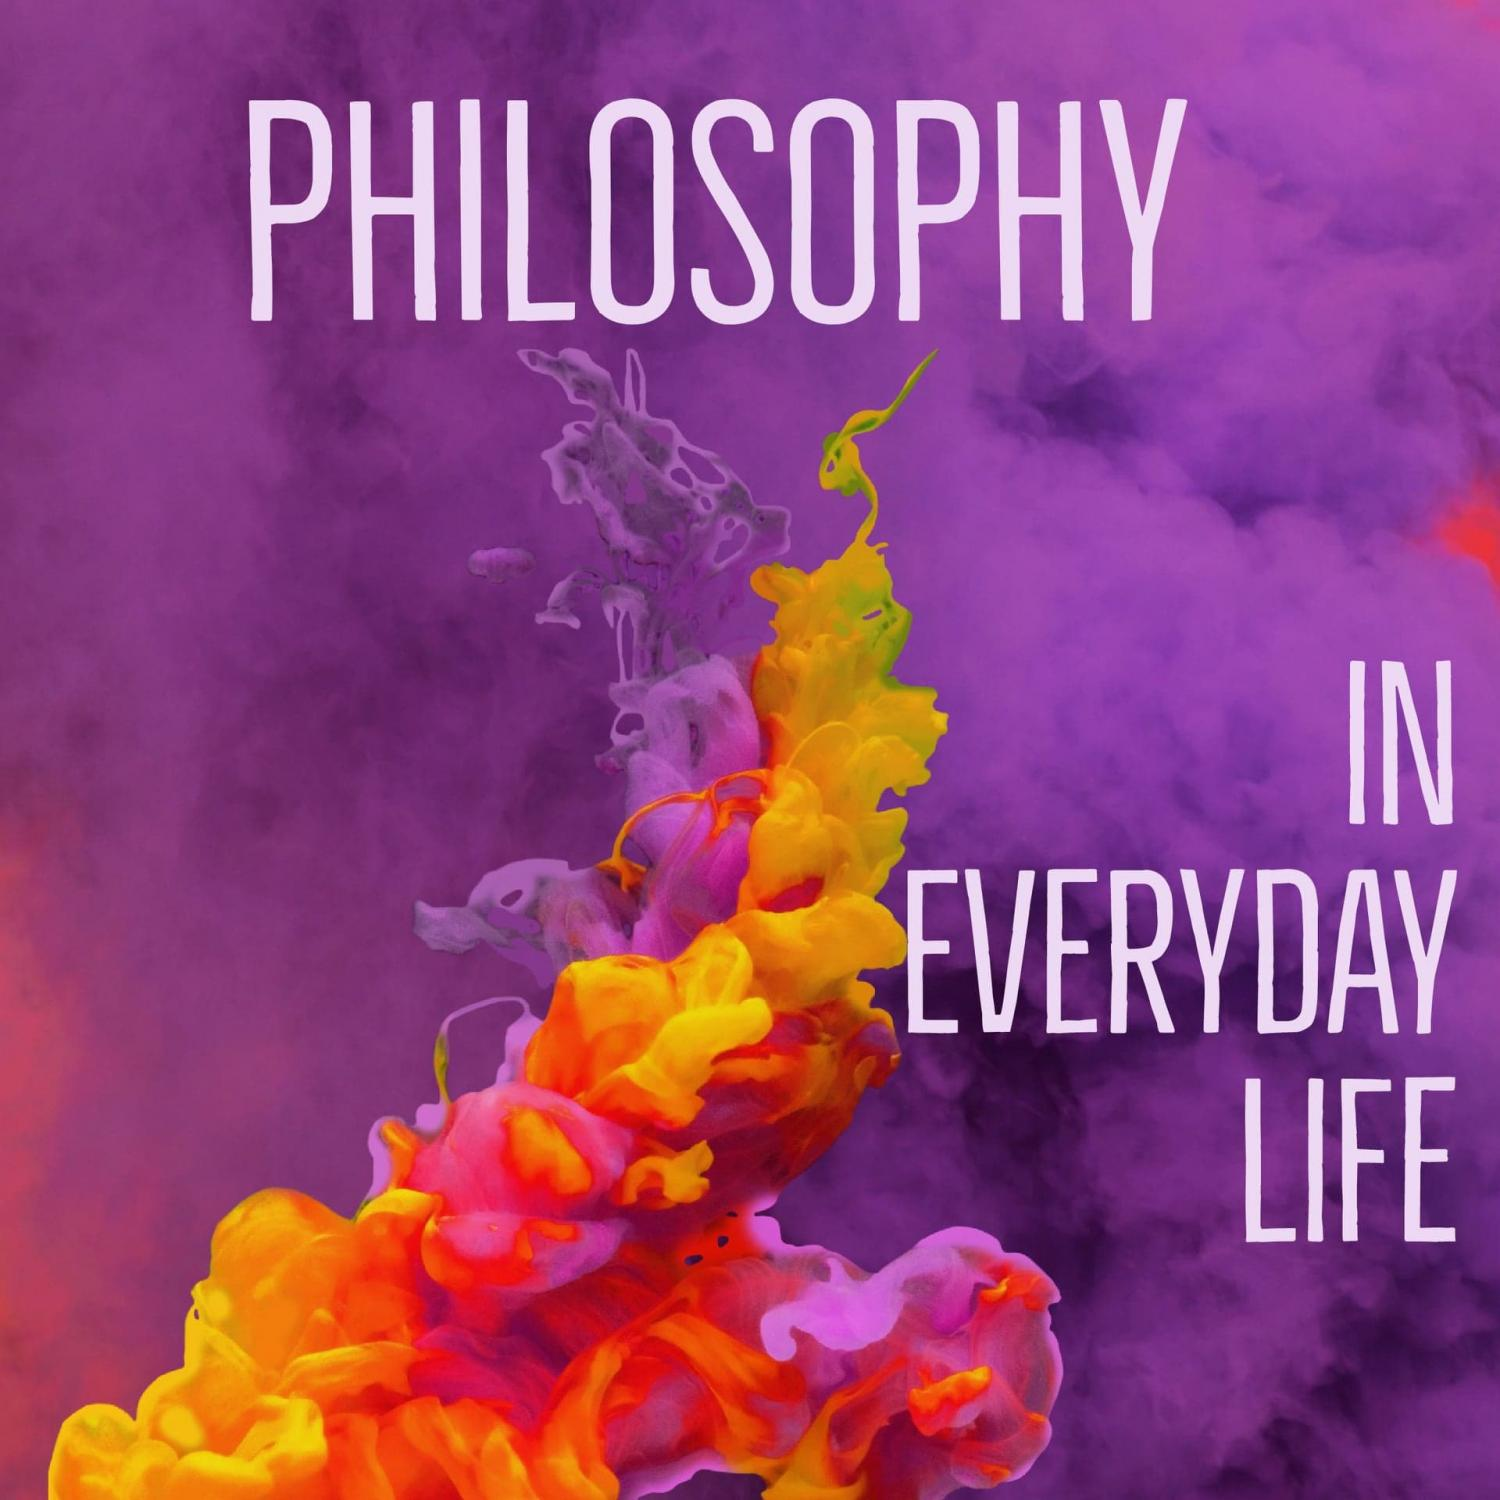 Philosophy in everyday life graphic